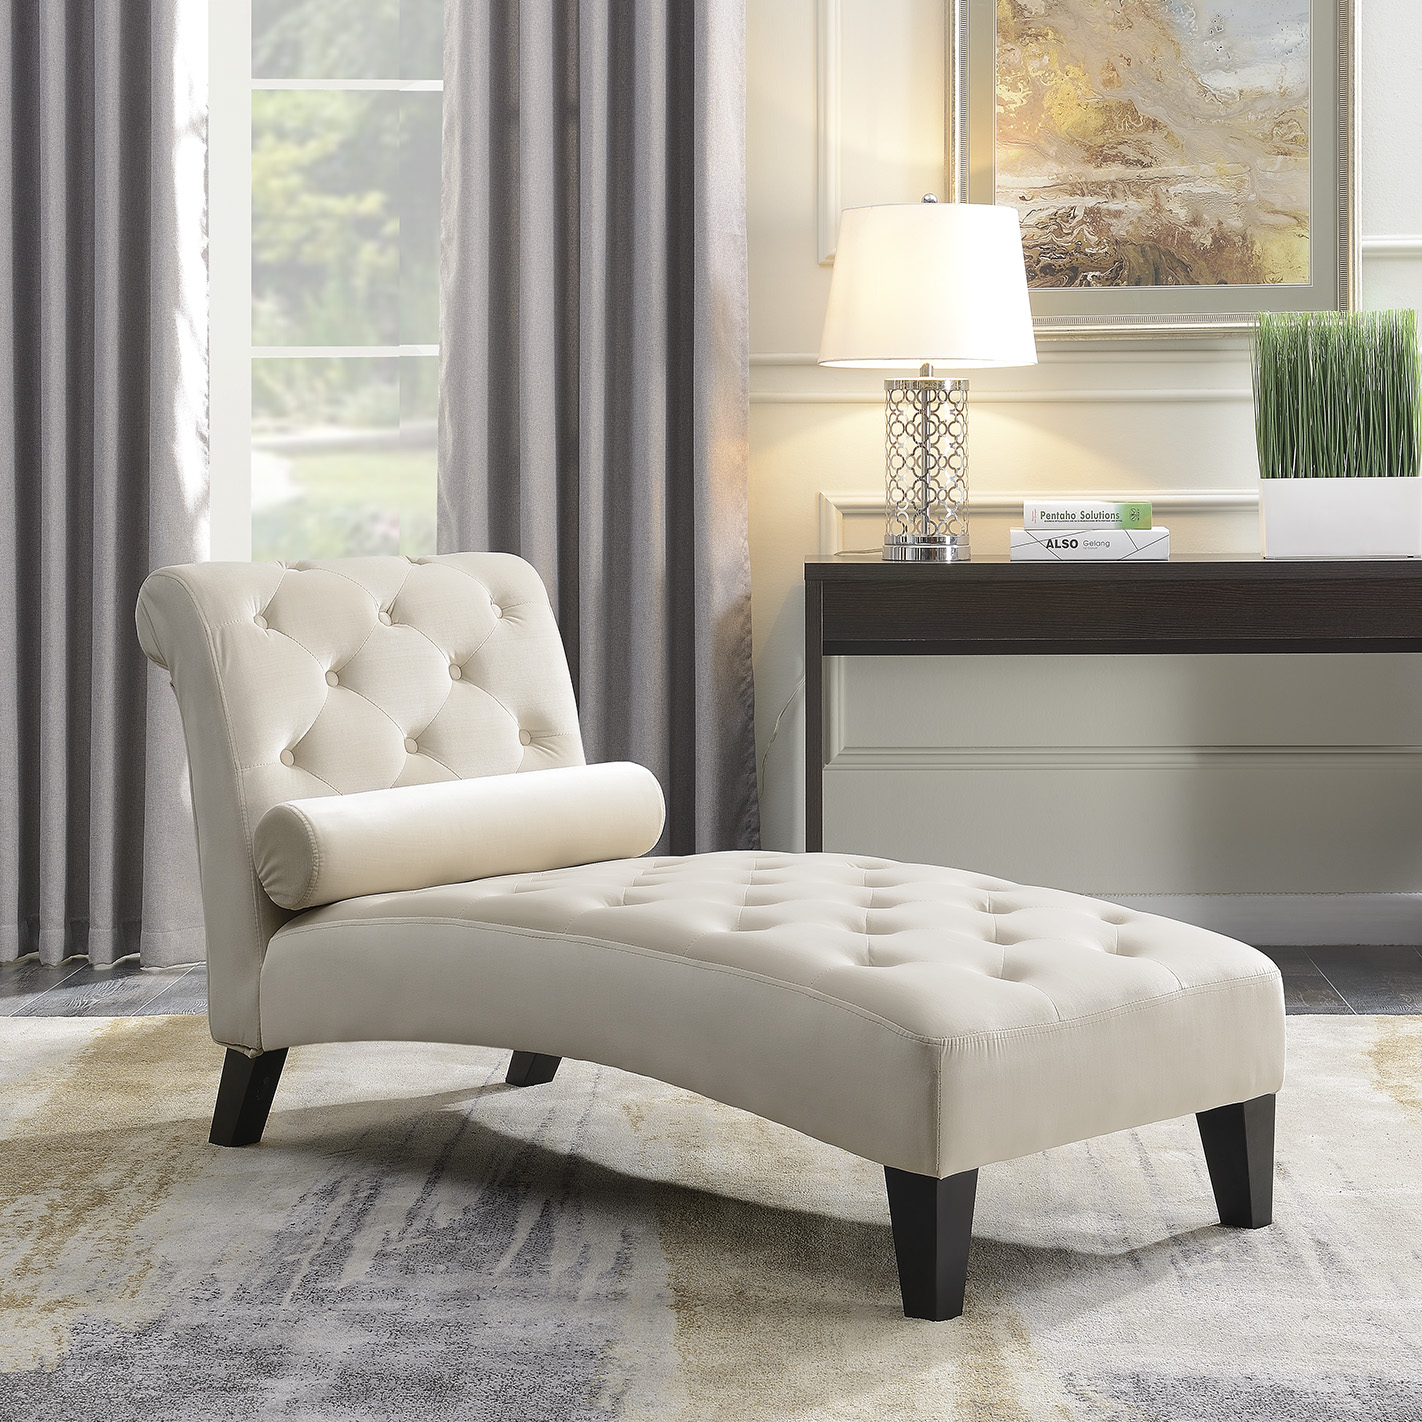 Details About Leisure Sofa Chair Chaise Lounge Couch Button Living Room Lumber Tufted Beige